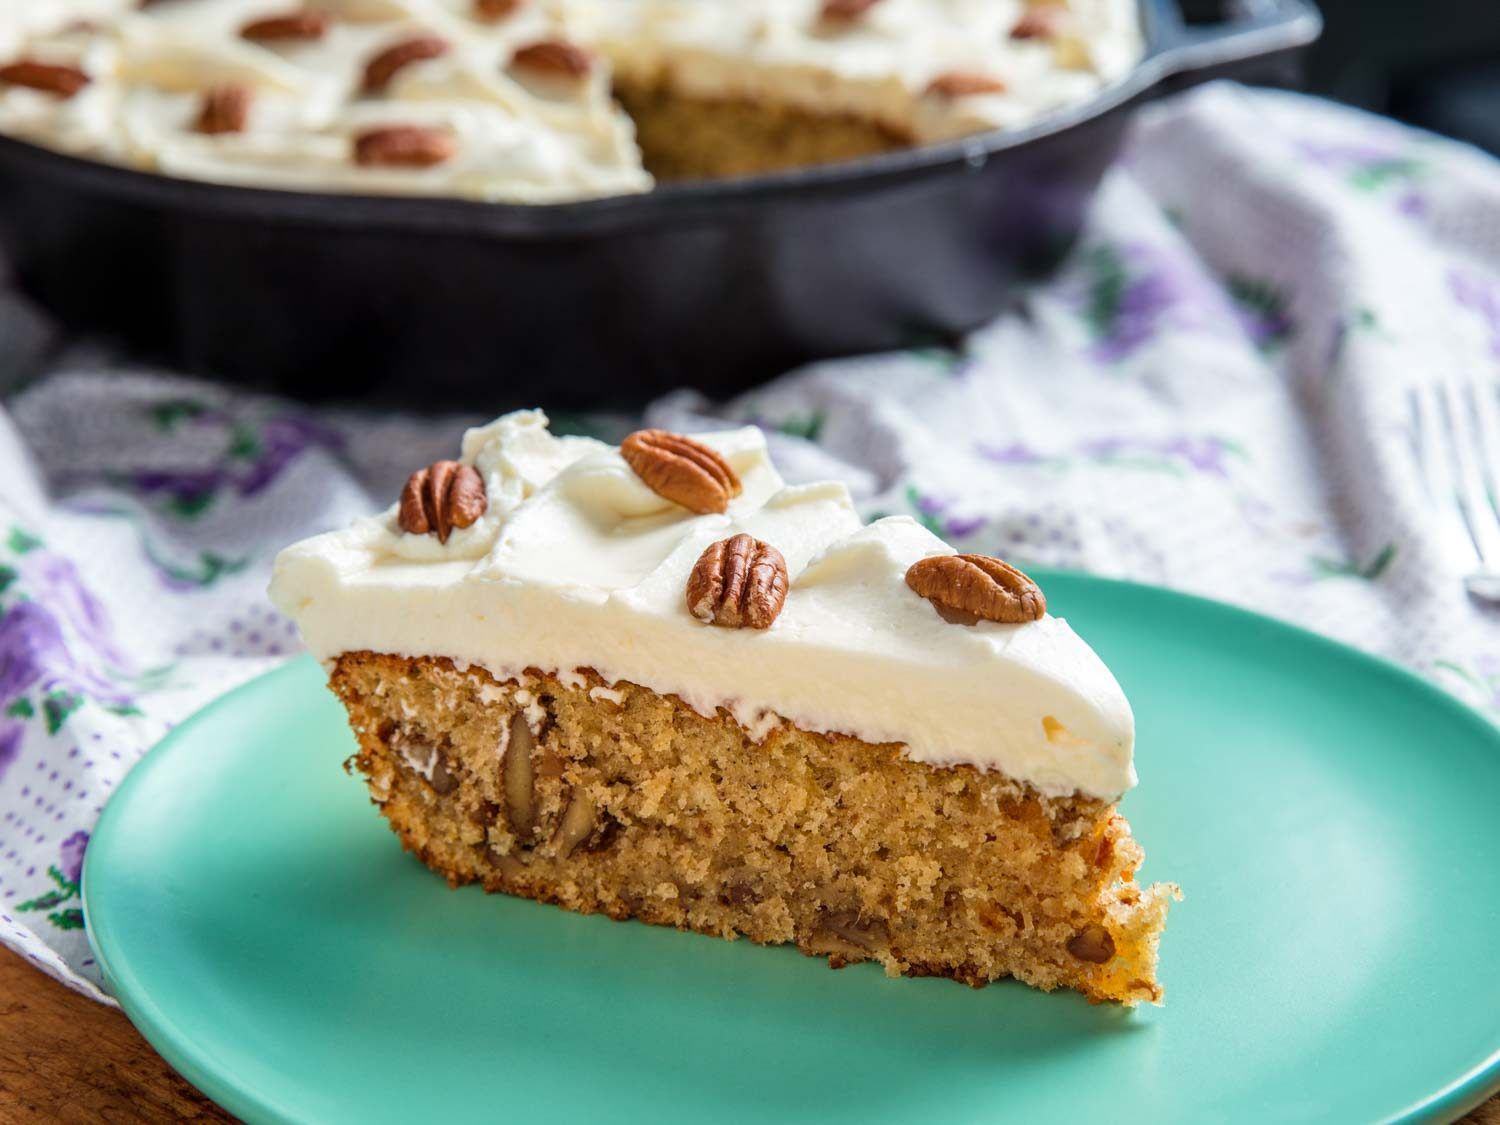 Slice of hummingbird cake topped with pecans and cream cheese frosting